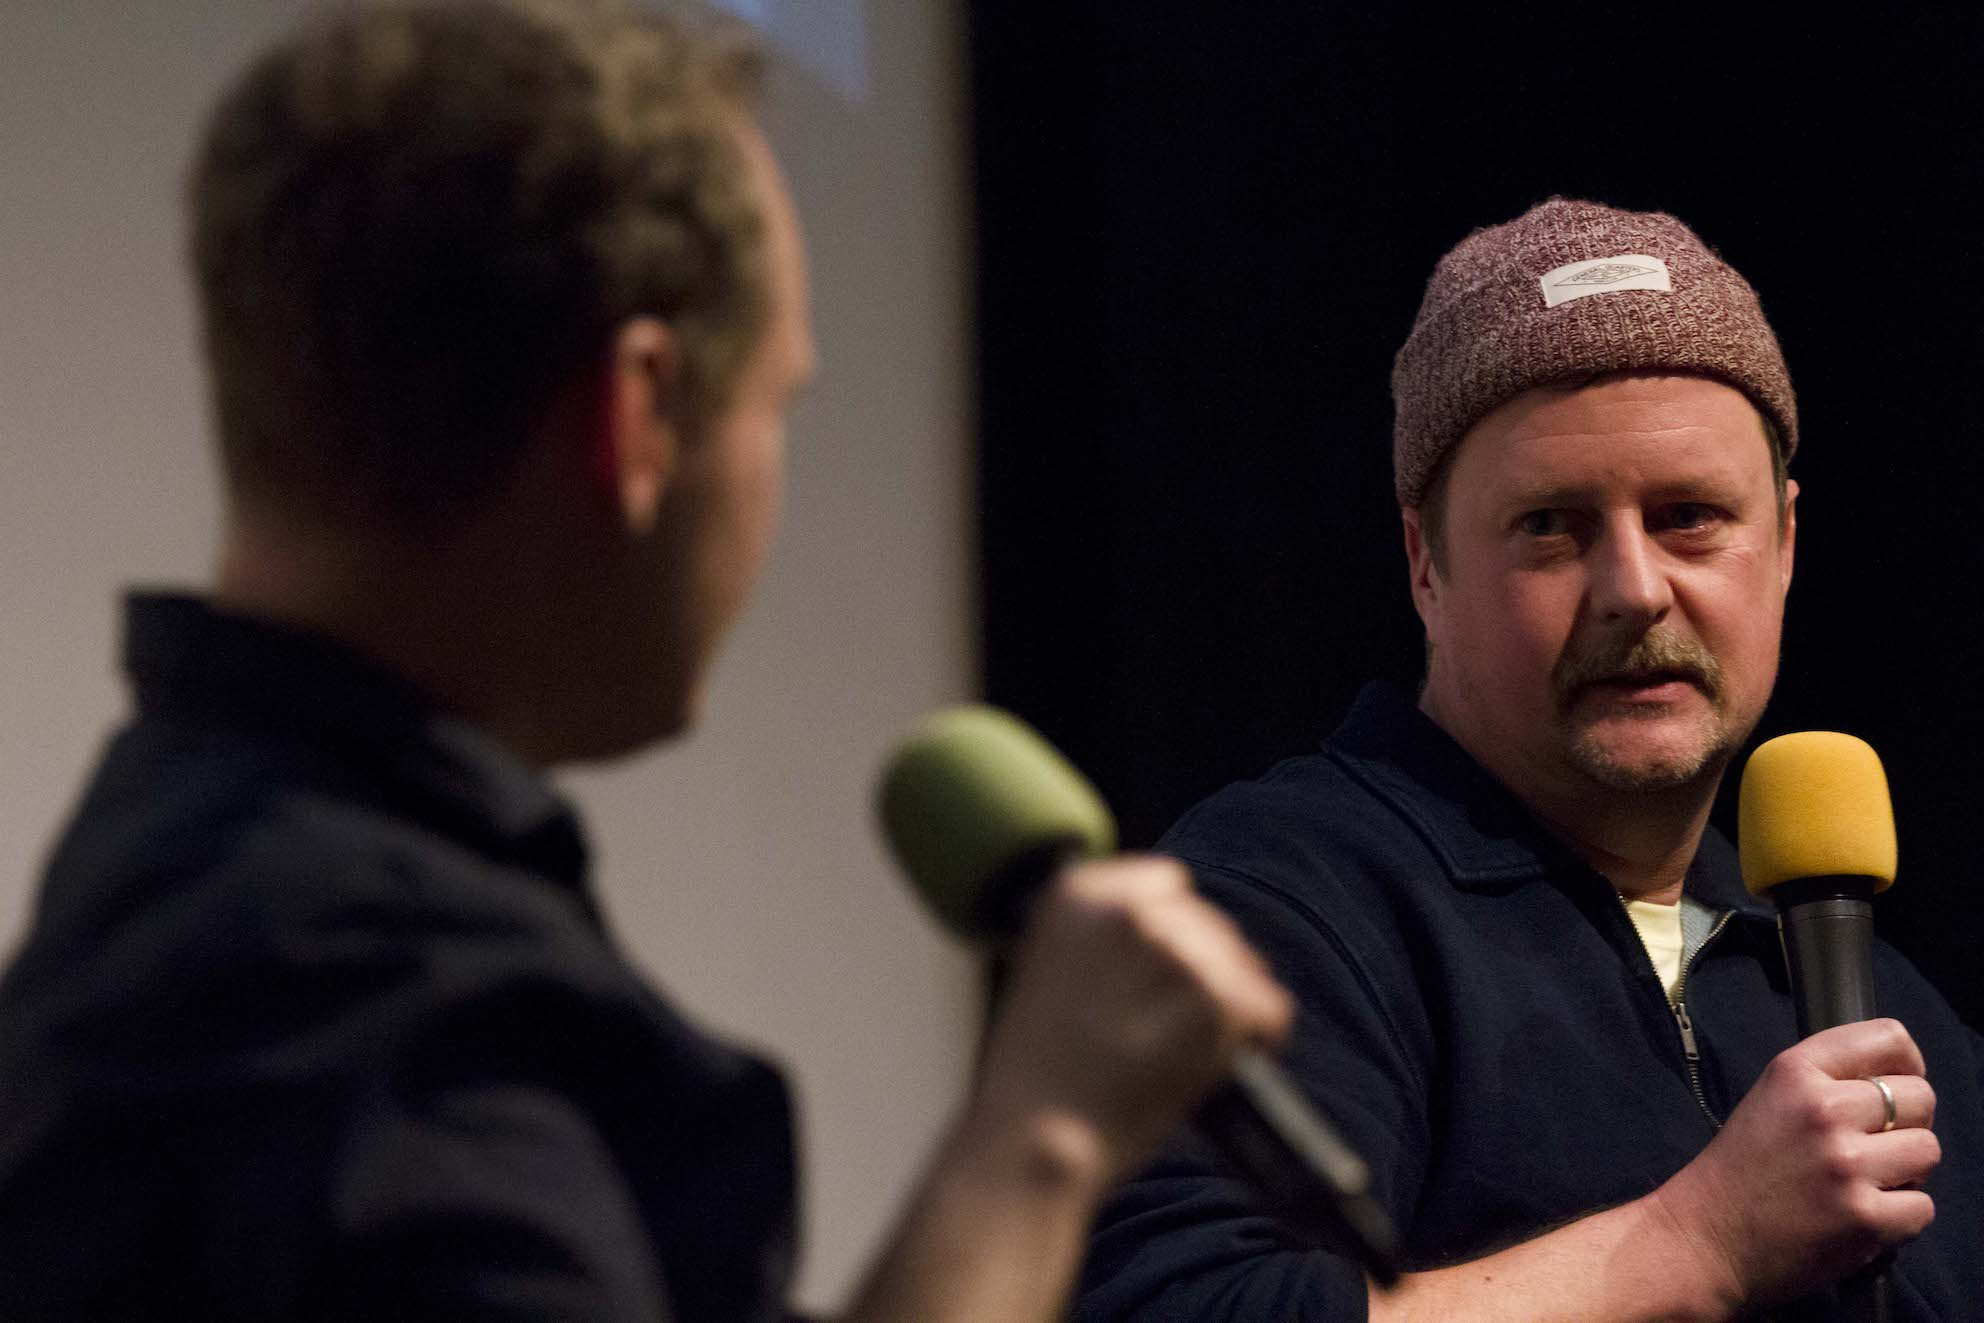 Irish Film London - Matthew Todd and John Butler at the St. Patrick's Film Festival London 2019